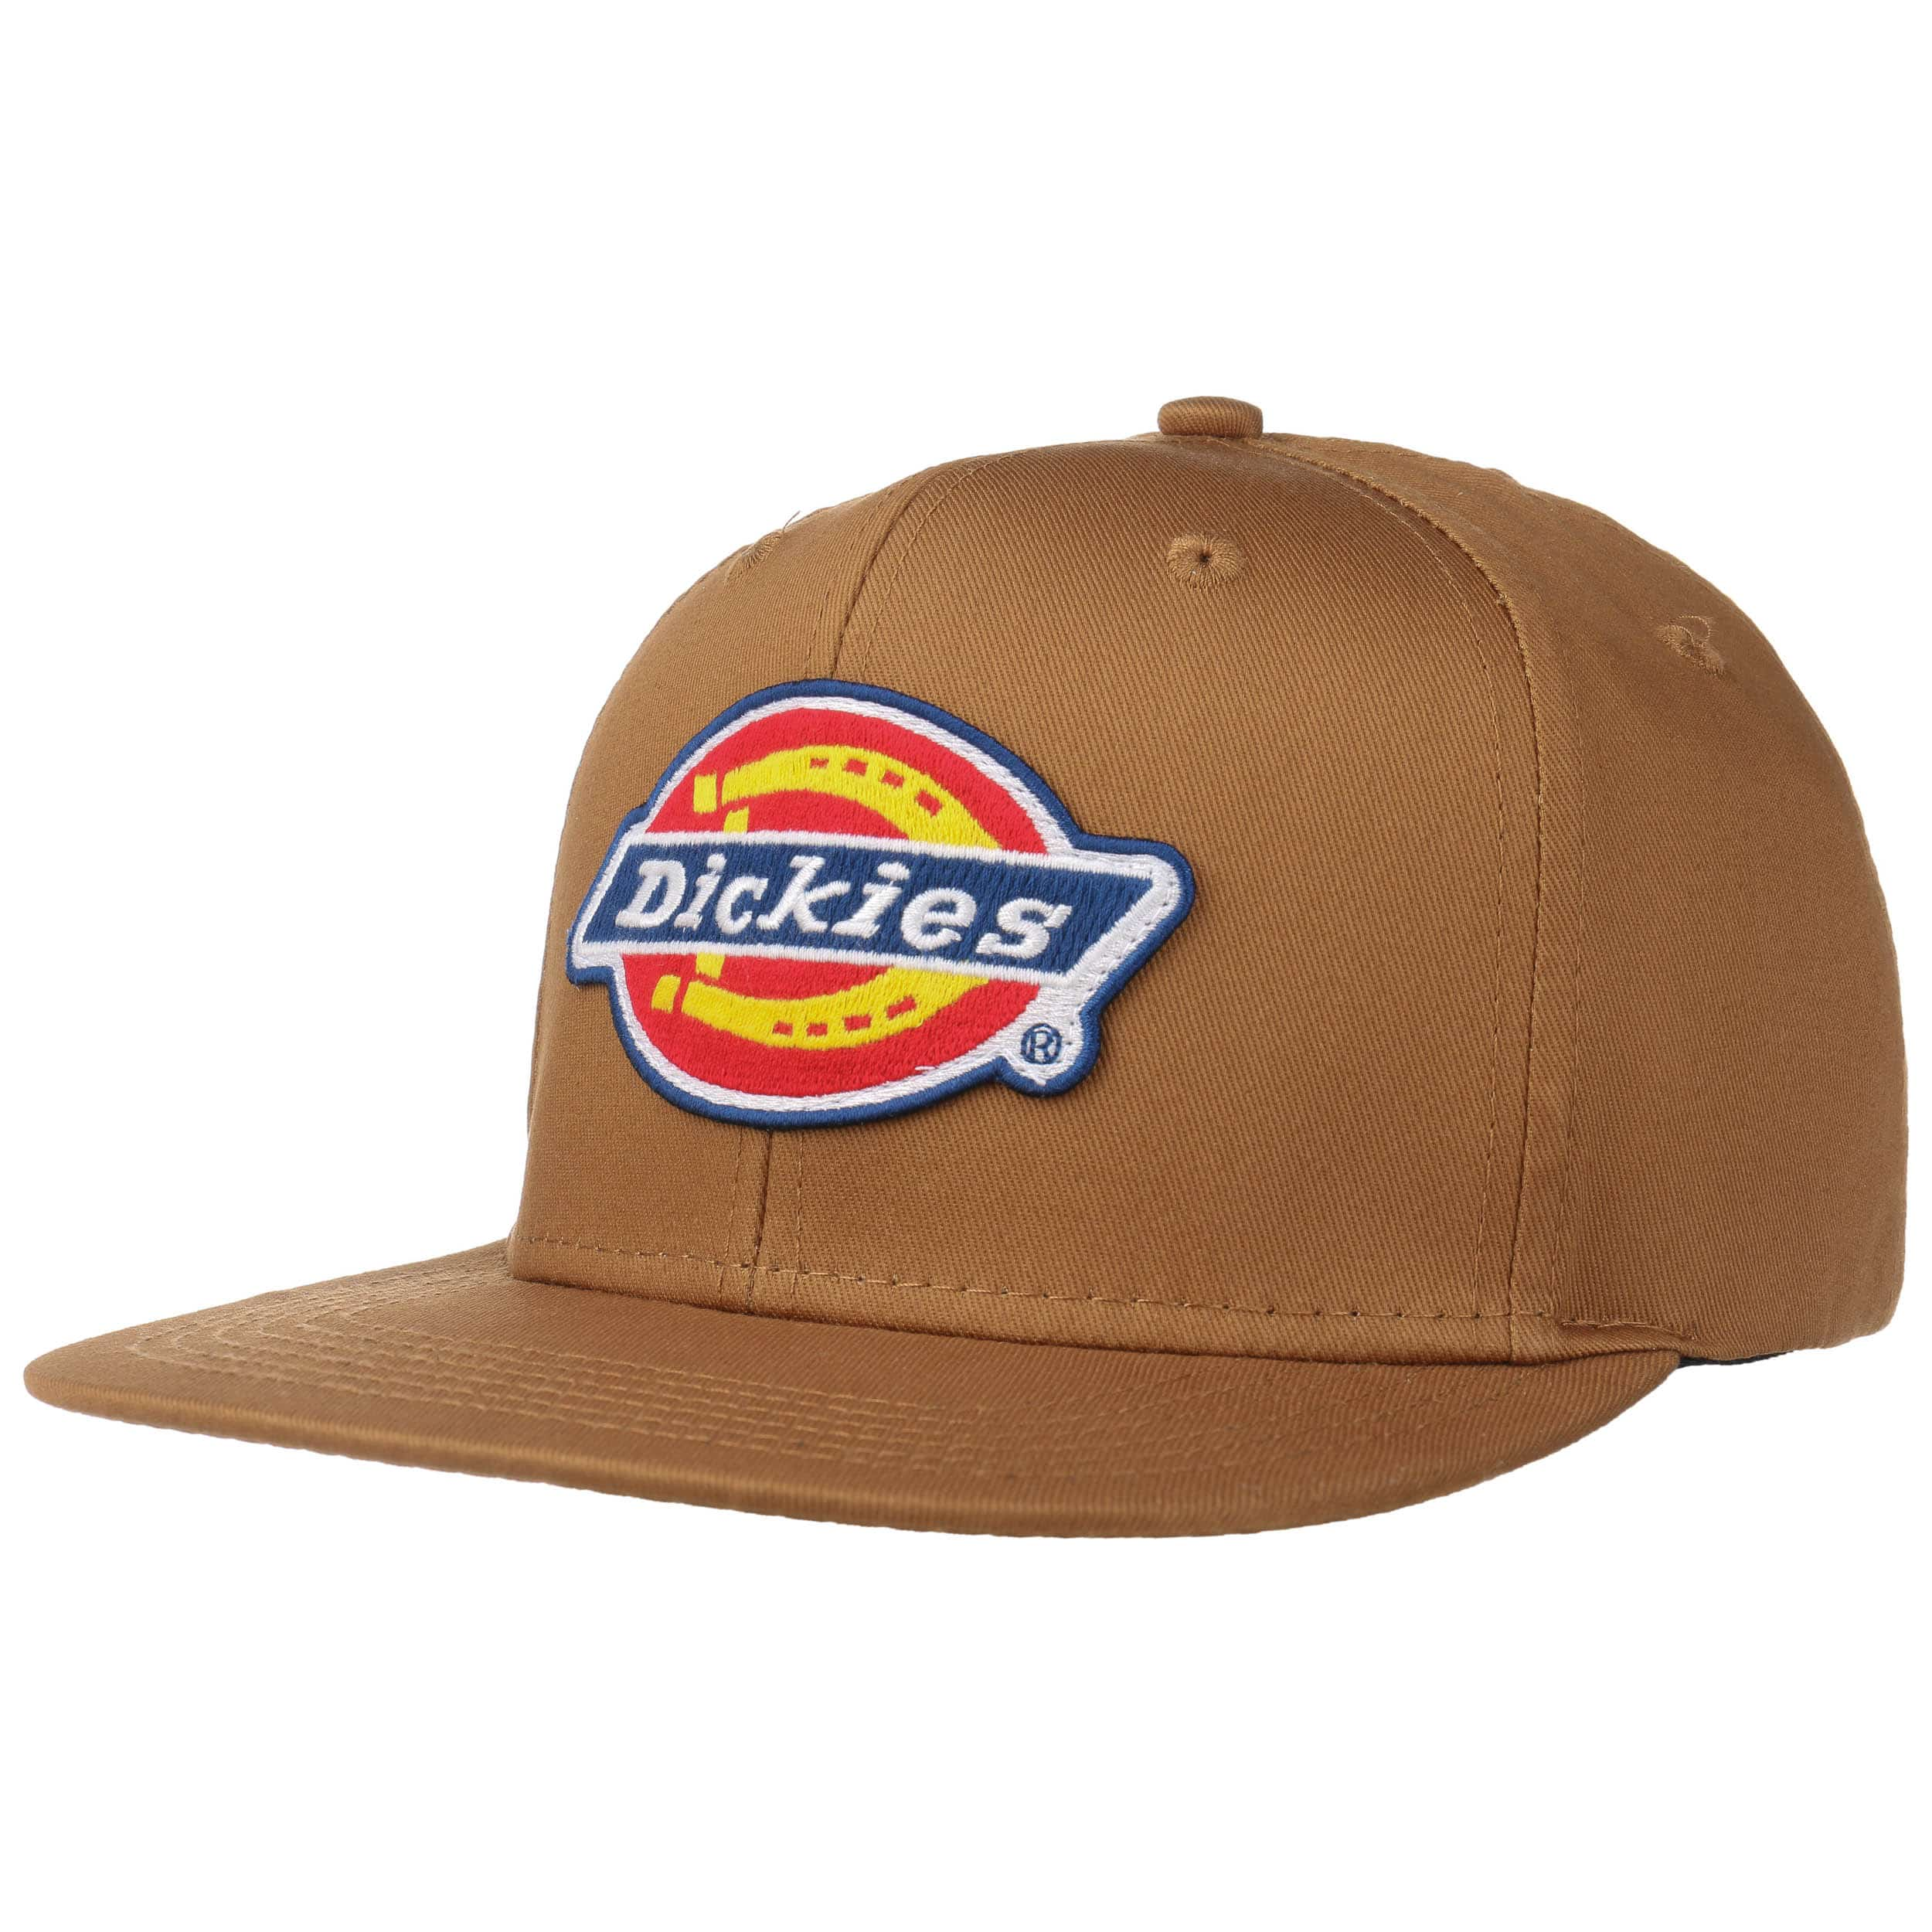 3a048a778a2 ... Muldoon Snapback Cap by Dickies - light brown 5 ...